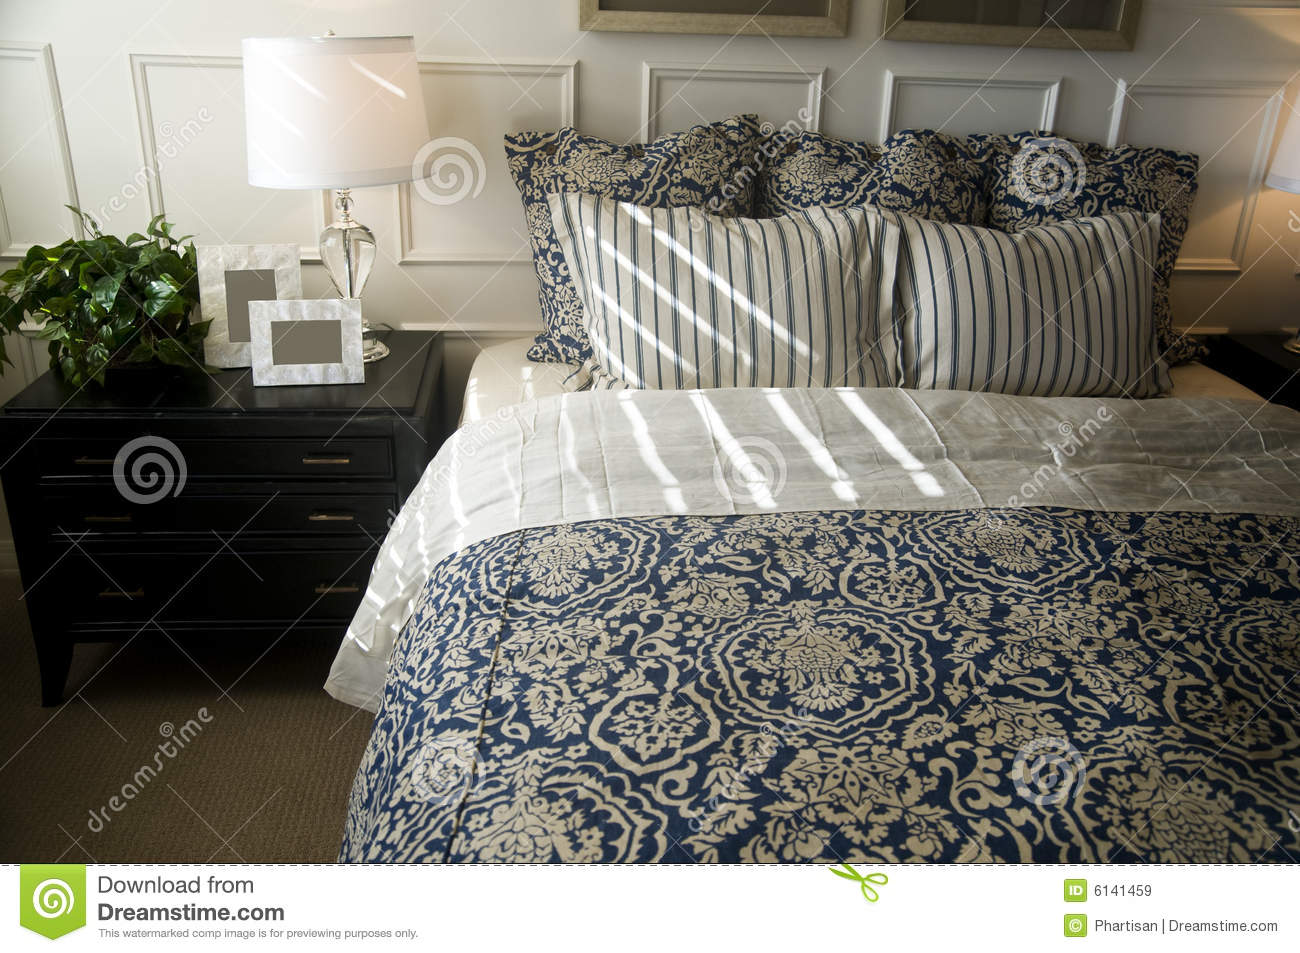 Beautiful bedroom interior design royalty free stock photo for Beautiful bedroom interior